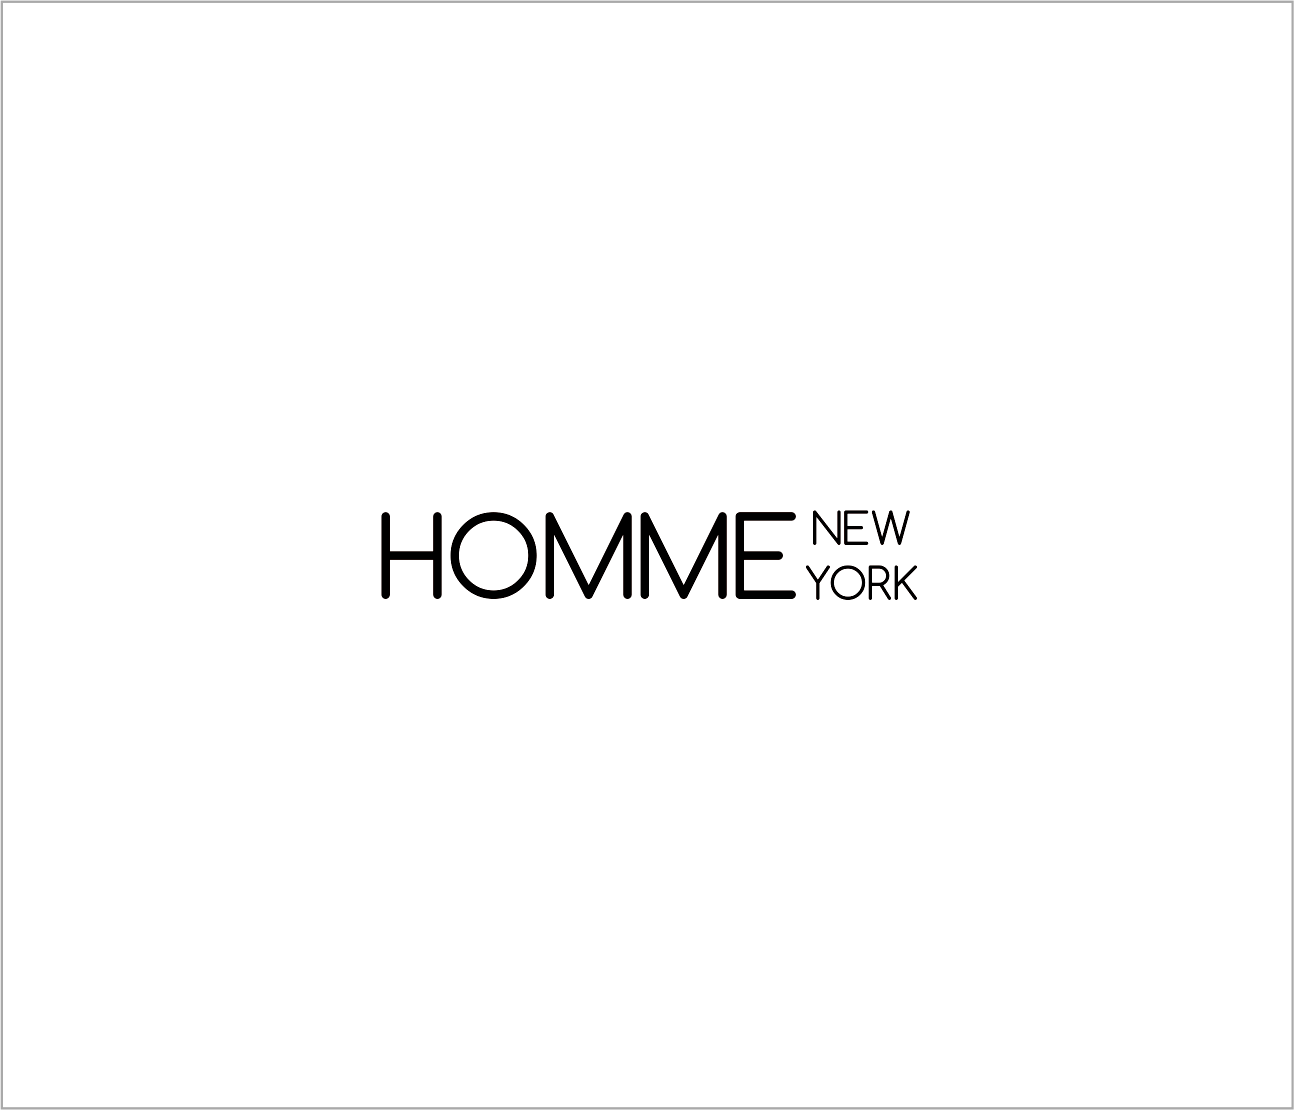 Logo Design by Armada Jamaluddin - Entry No. 99 in the Logo Design Contest Artistic Logo Design for HOMME | NEW YORK.